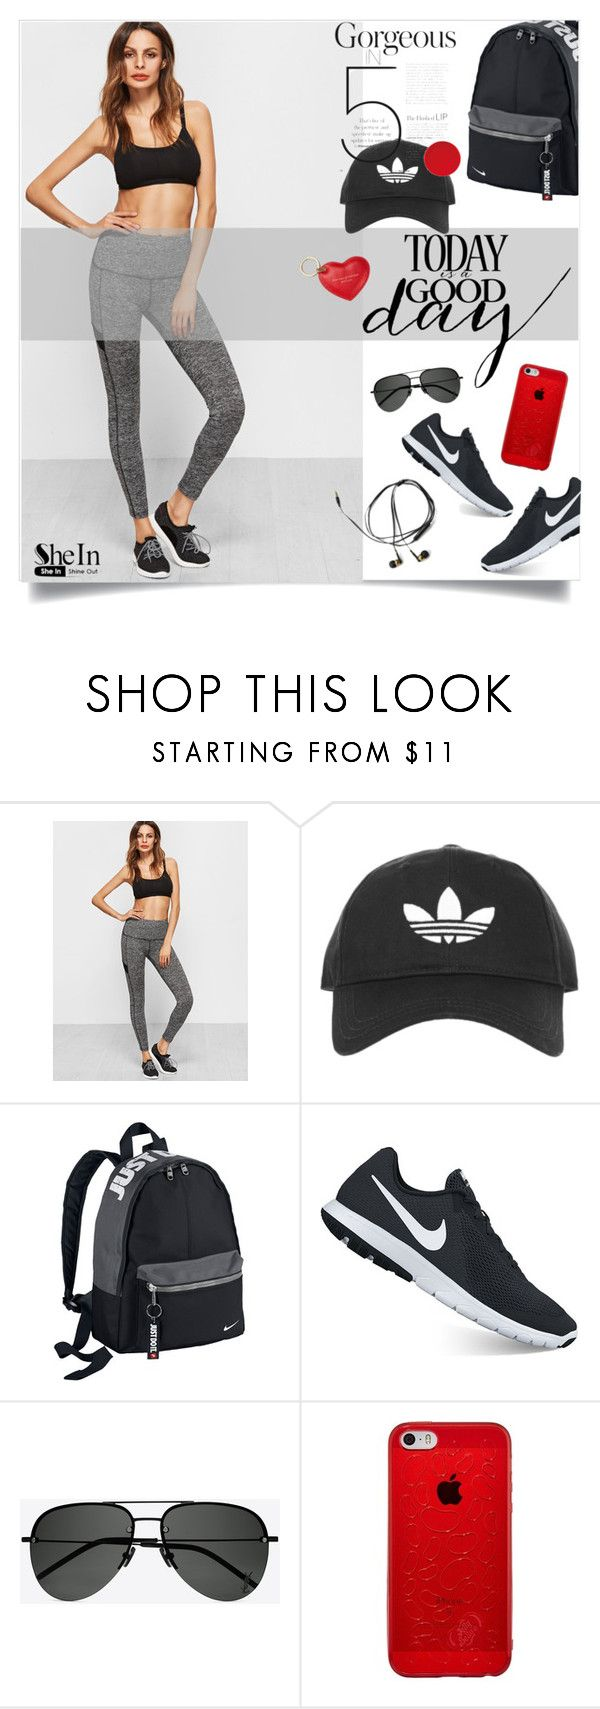 """""""Серые Леггинсы в Шеин!"""" by miss-image ❤ liked on Polyvore featuring Topshop, NIKE, Yves Saint Laurent and Aspinal of London"""